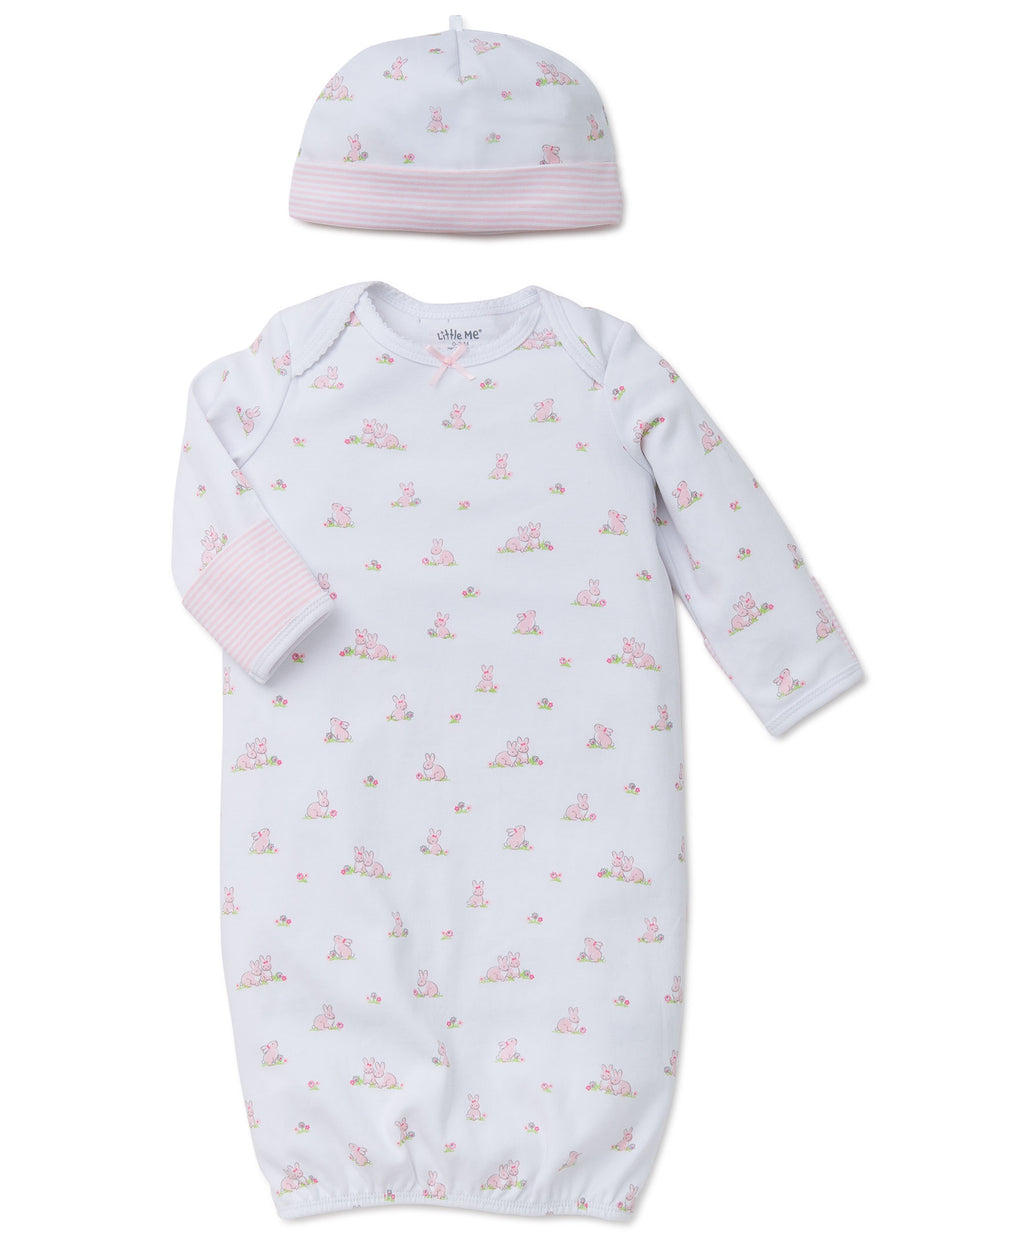 Baby Bunnies Sleeper Gown And Hat